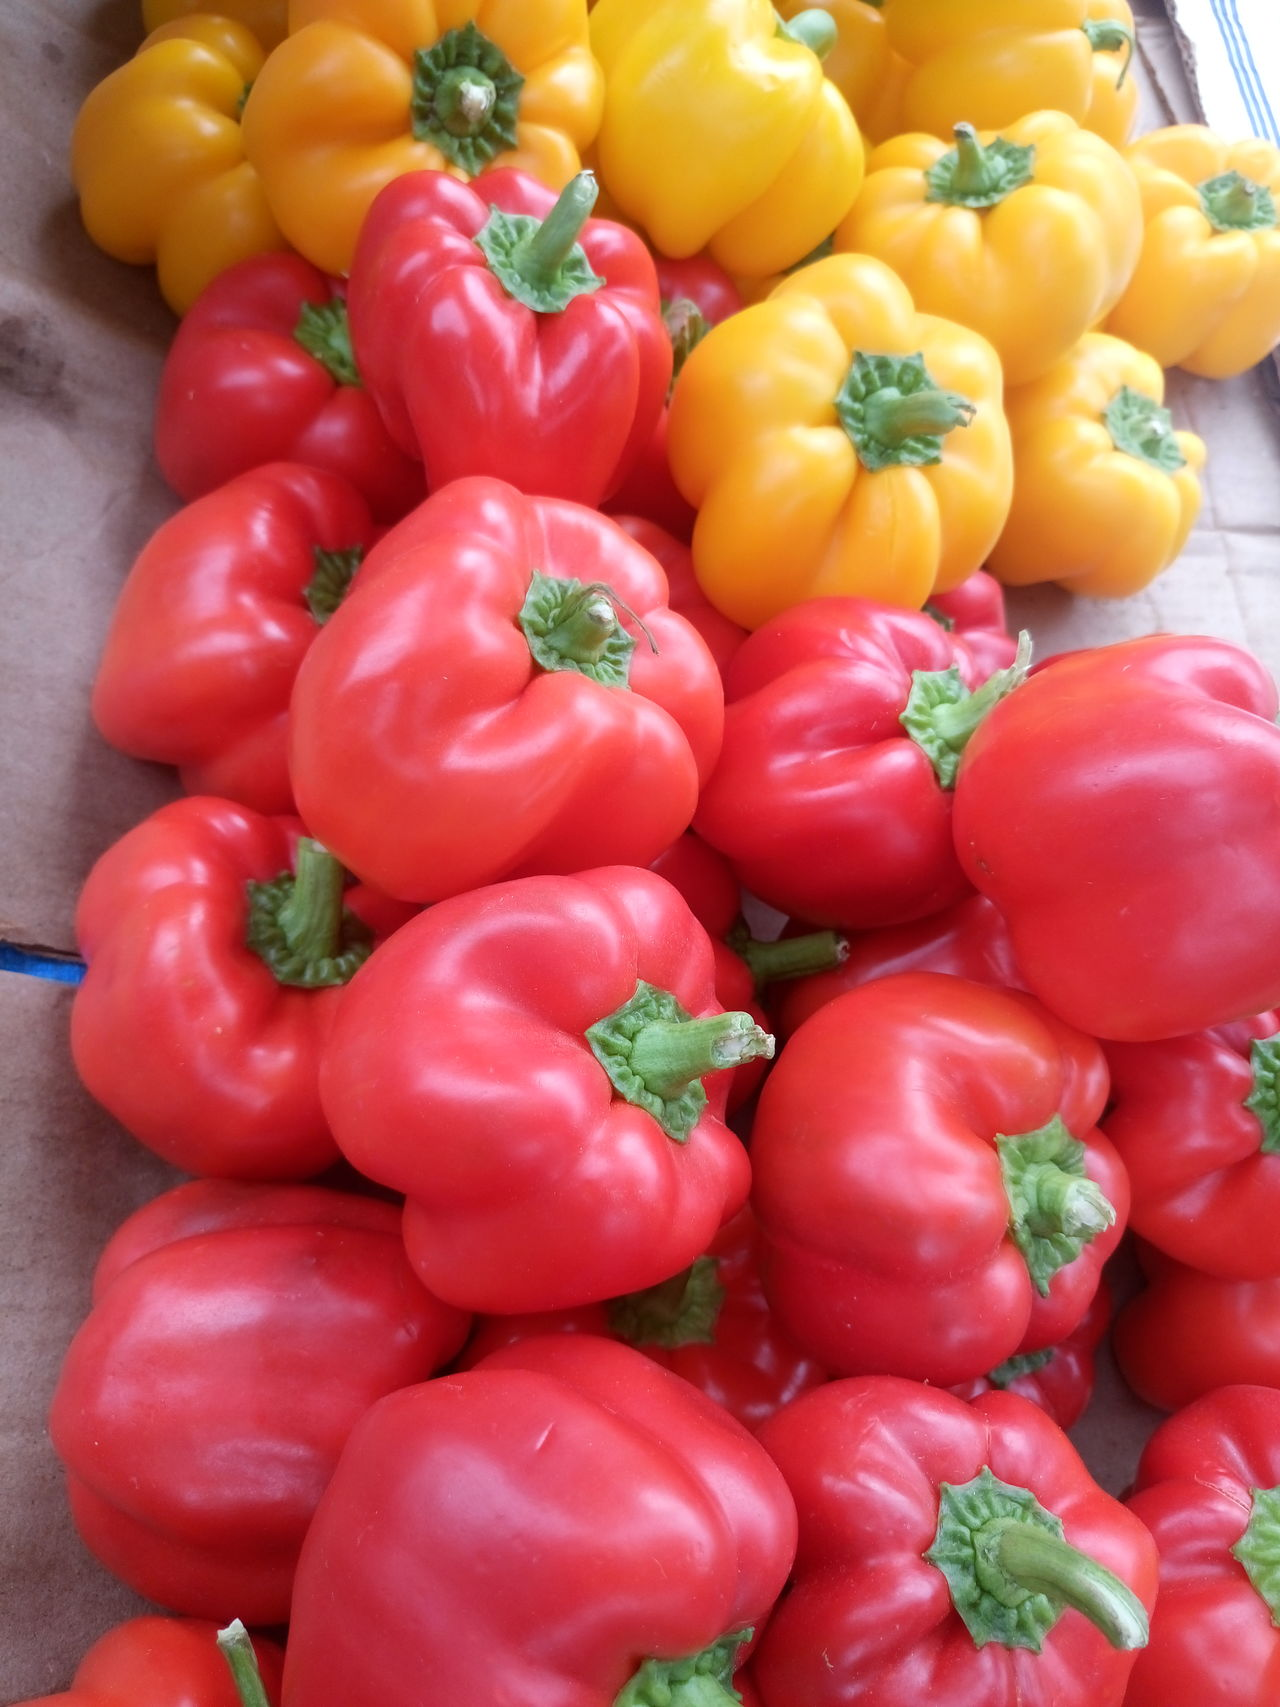 Backgrounds Bell Pepper Close-up Day Food Food And Drink For Sale Freshness Full Frame Healthy Eating Large Group Of Objects Market Nature No People Outdoors Red Red Red Bell Pepper Vegetable Yellow Yellow Bell Pepper